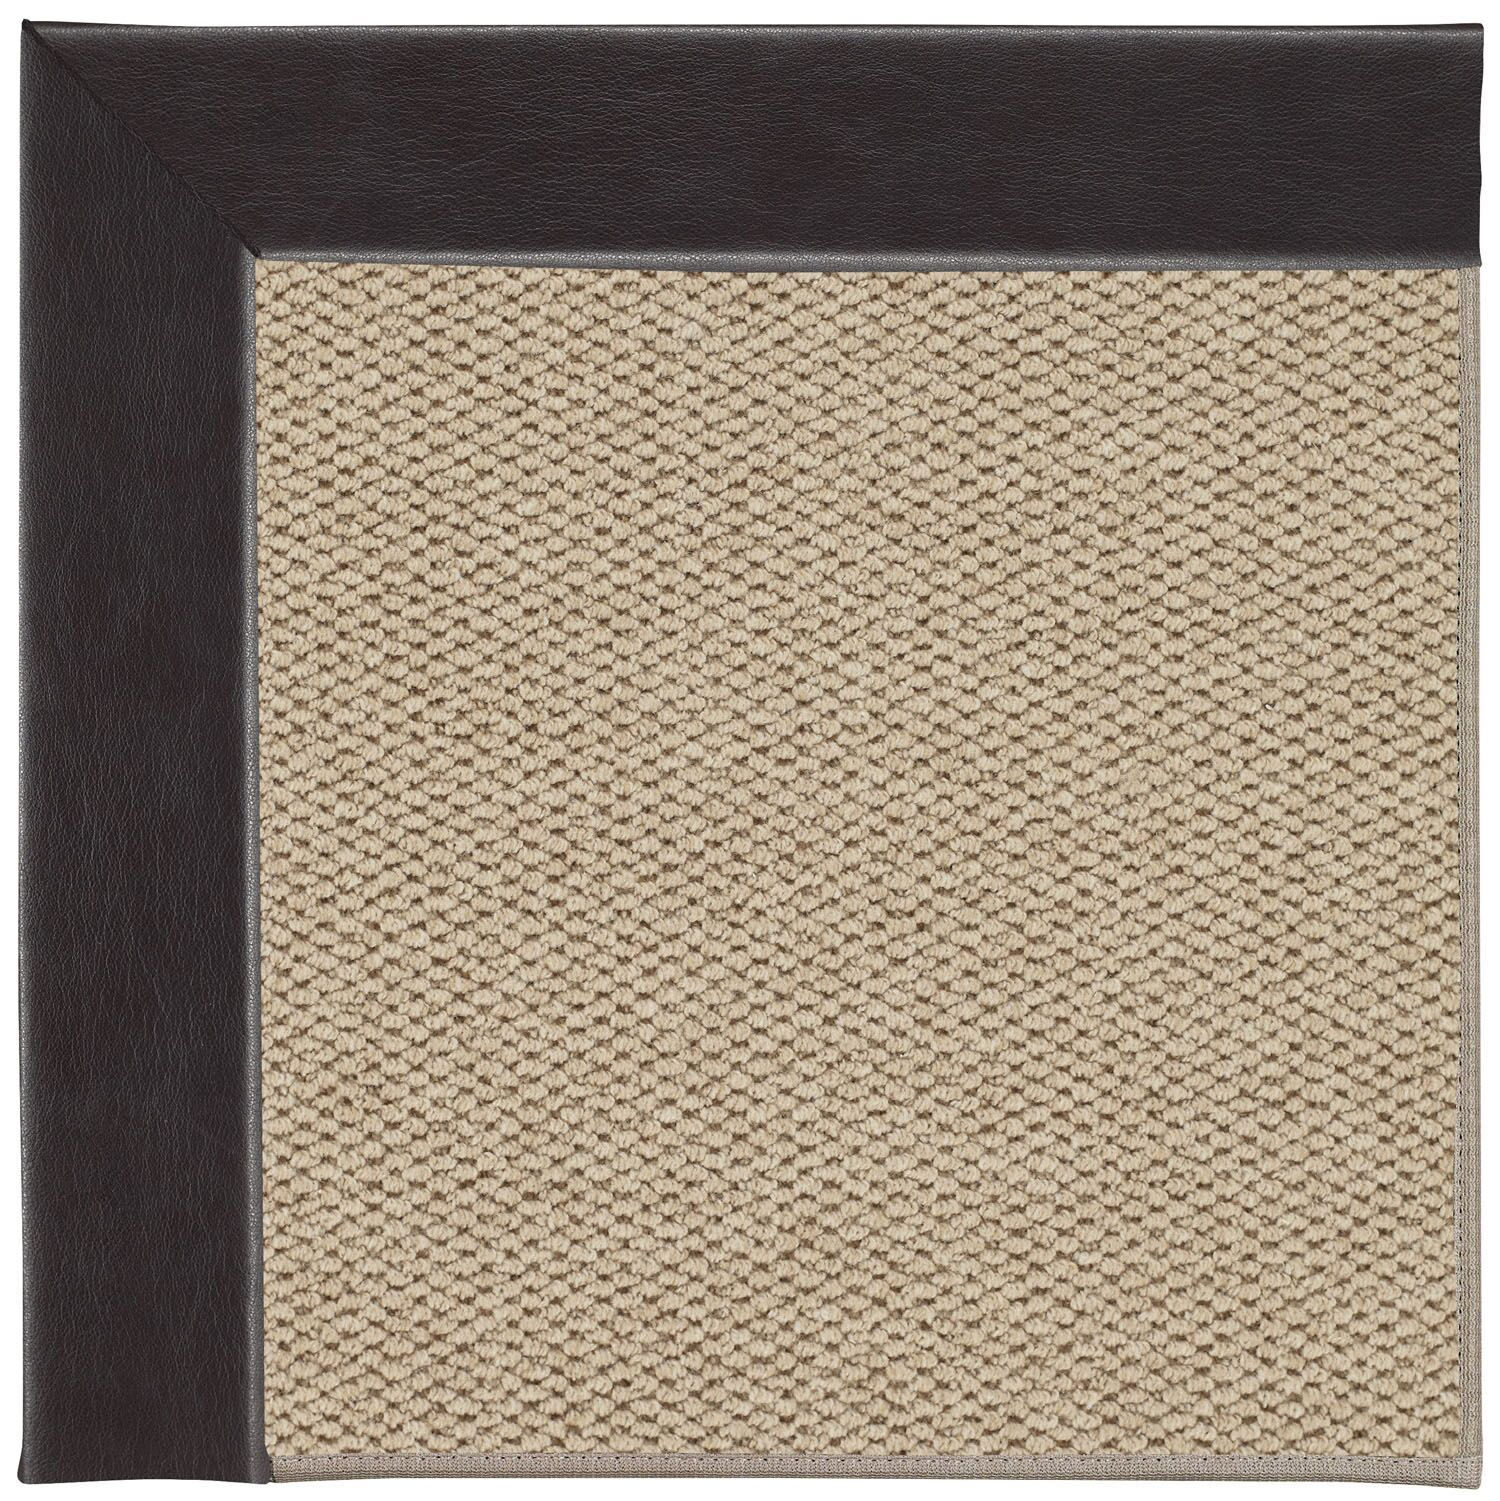 Barrett Champagne Machine Tufted Black and Beige Area Rug Rug Size: Rectangle 8' x 10'